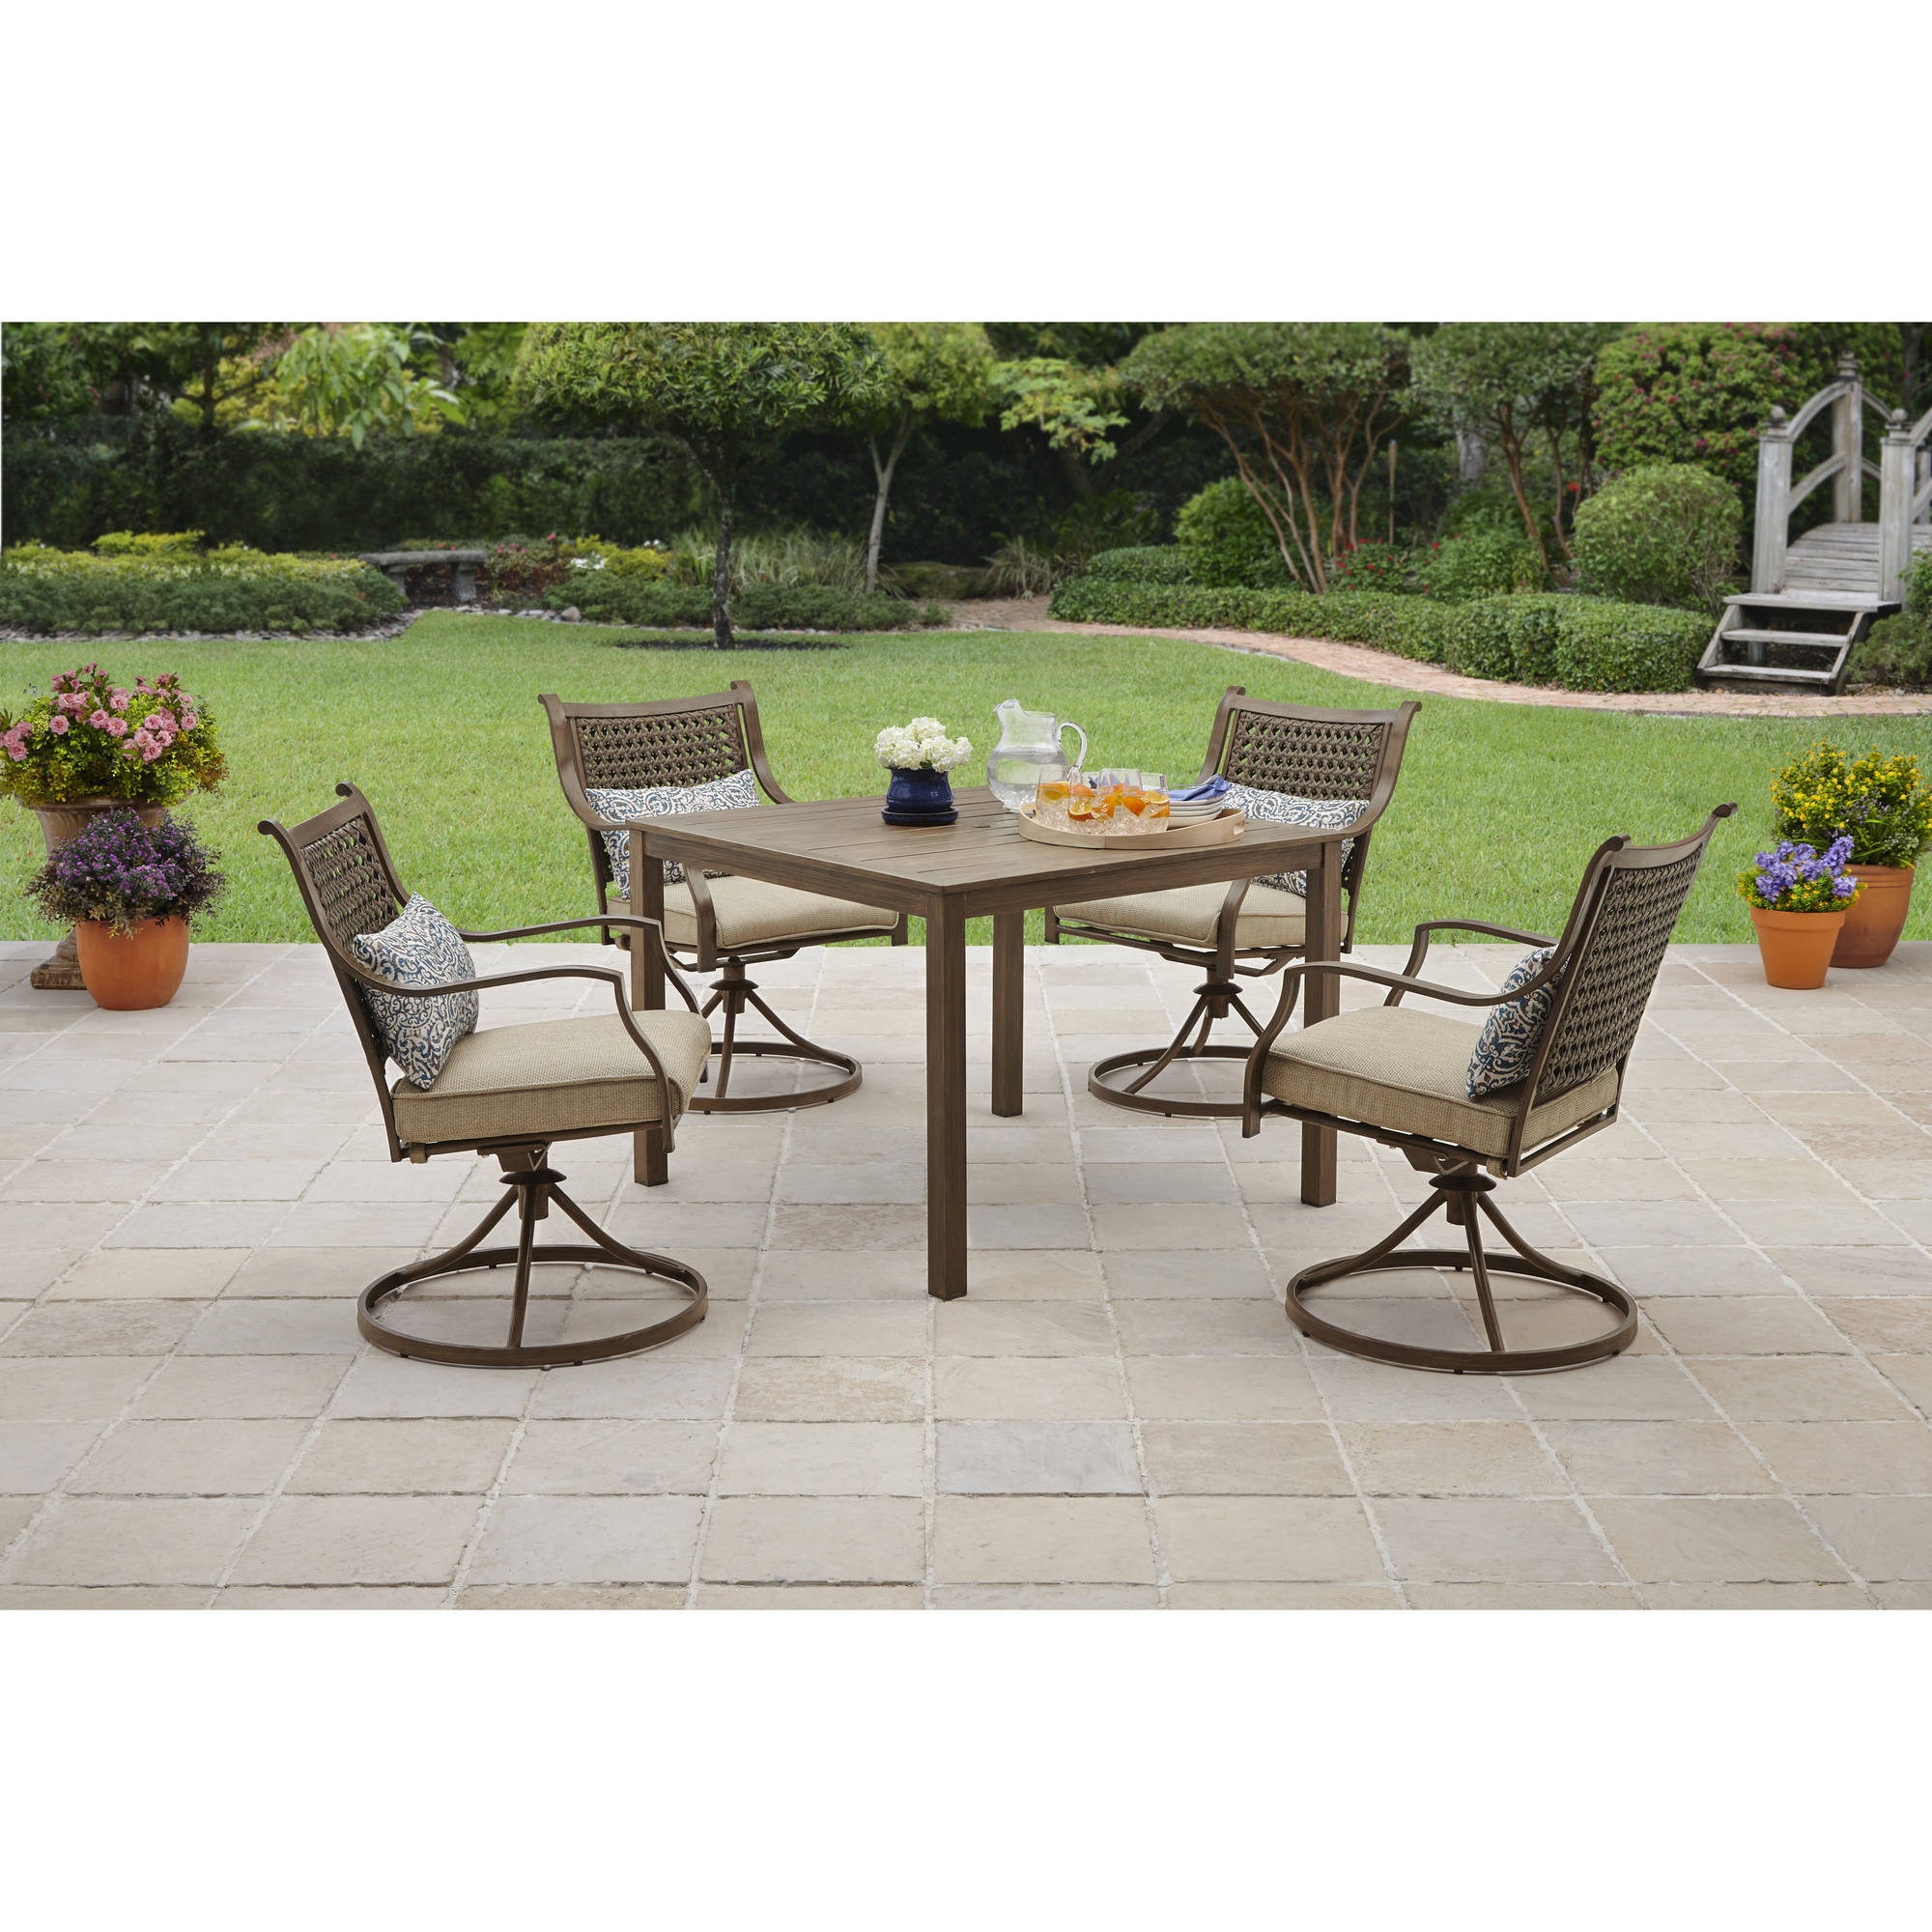 Best ideas about Outdoor Chairs Walmart . Save or Pin Wrought Iron Patio Furniture Walmart Now.